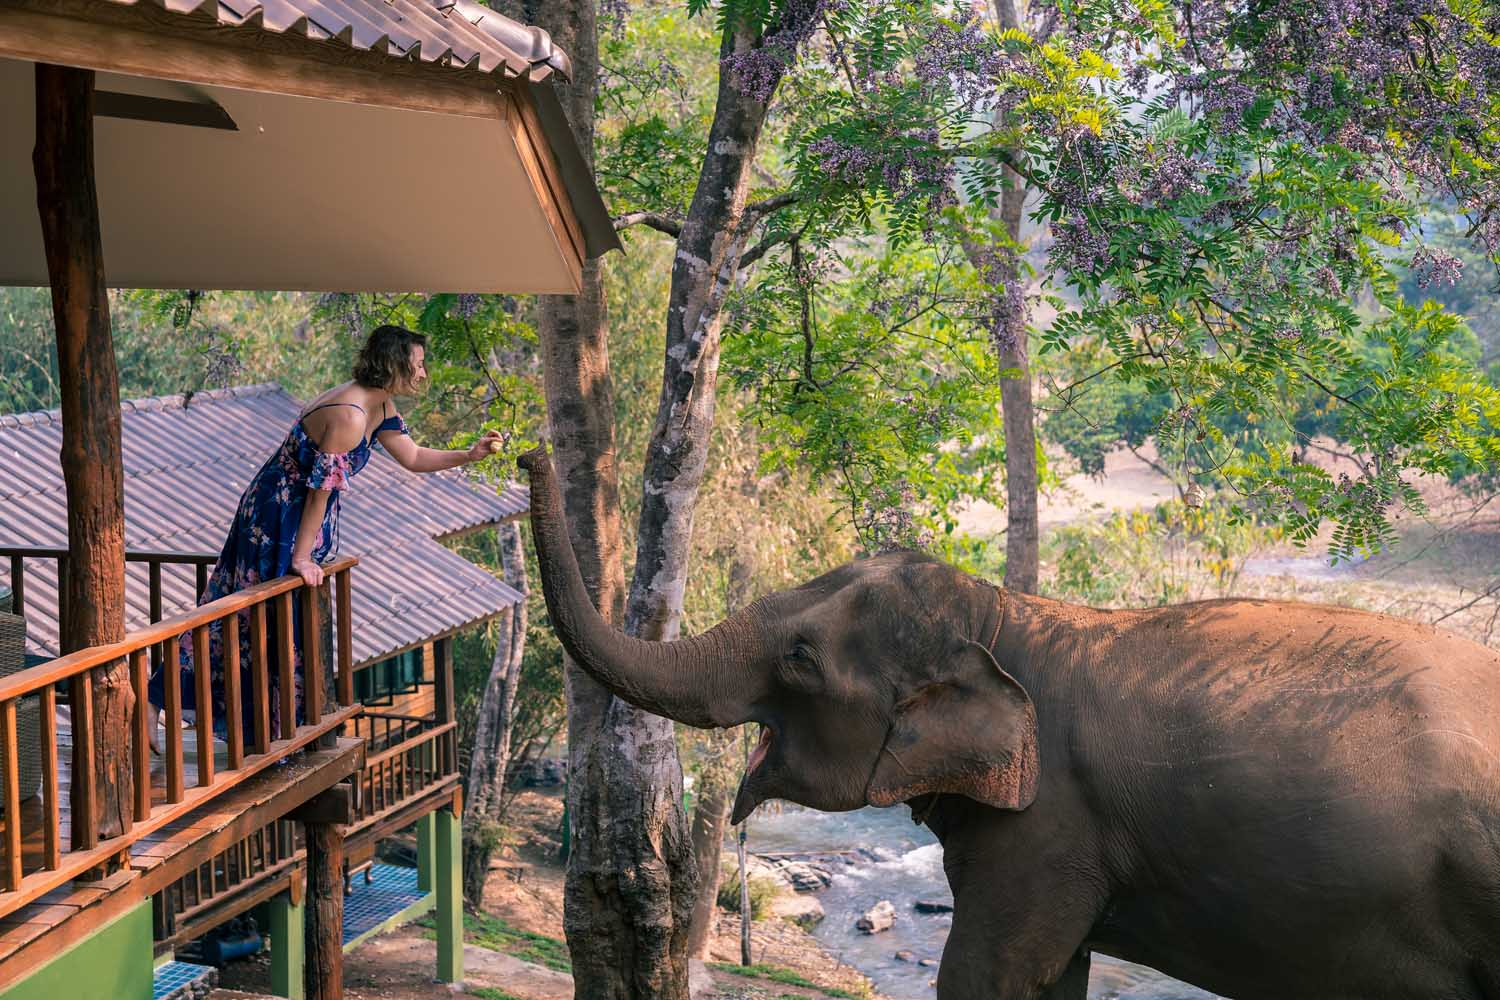 The best Chiang Mai elephant experience